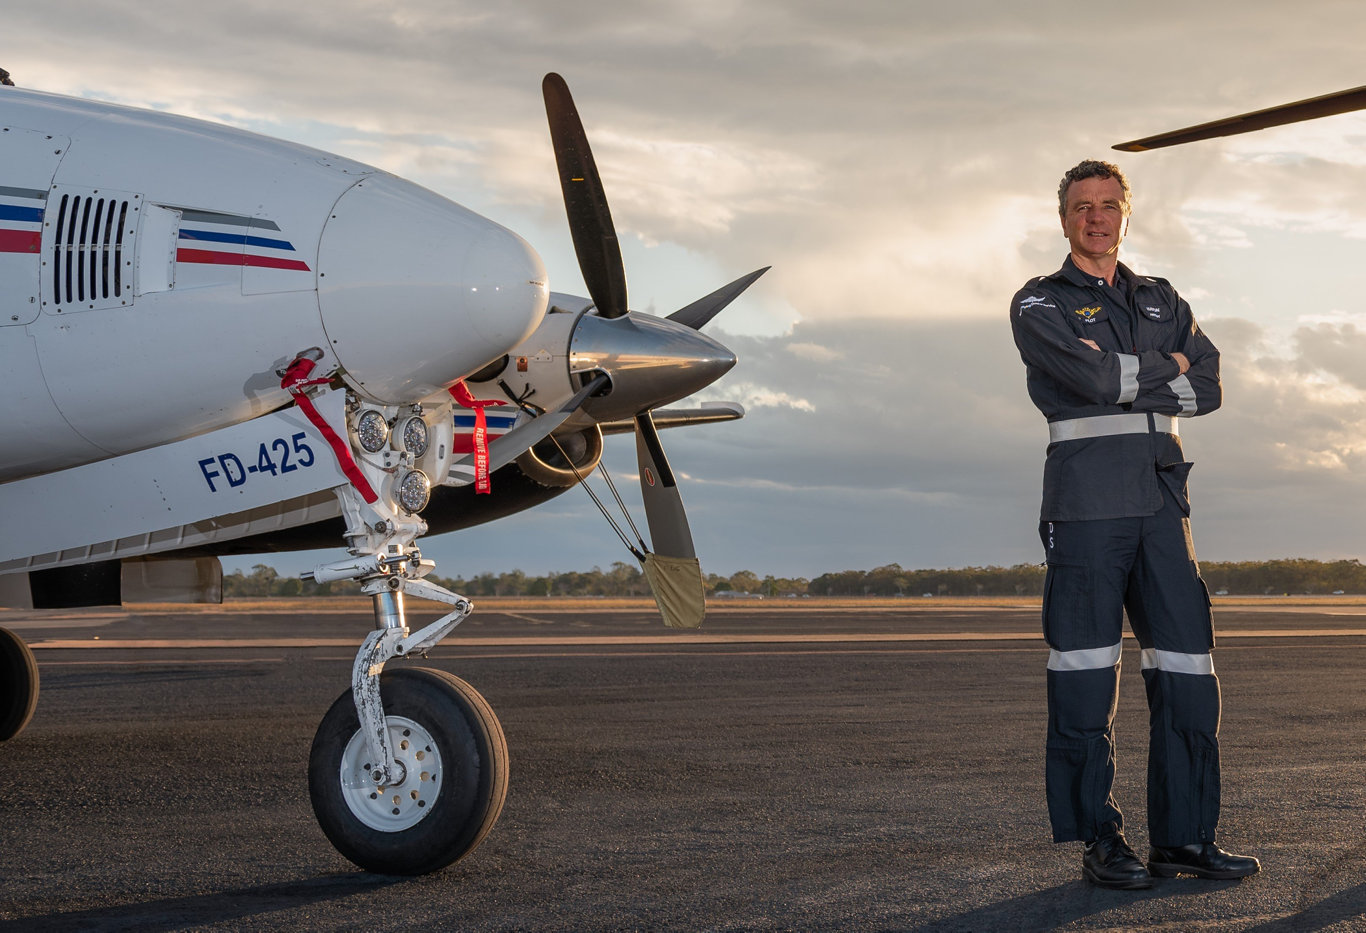 Royal Flying Doctor Service pilot Haydn Frisby says it's the happy moments that remind him why he does what he does.